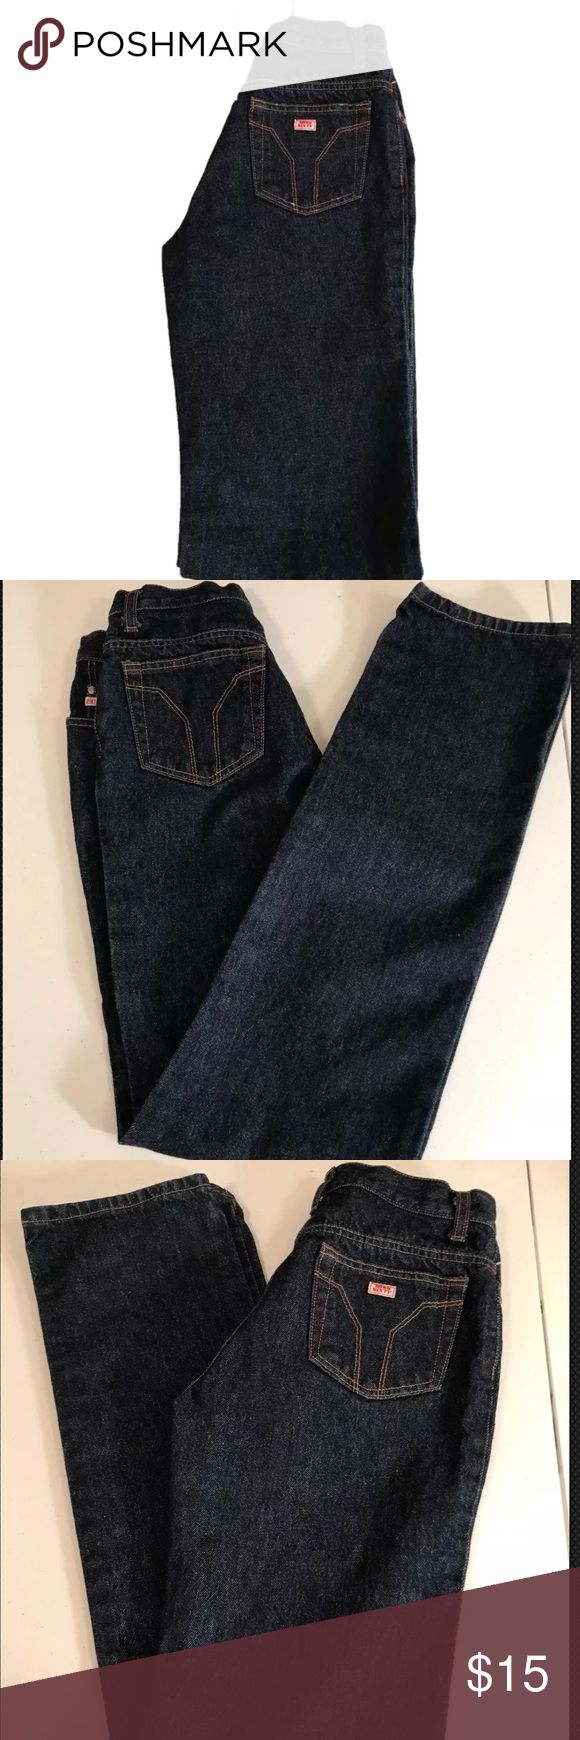 """Miss Sixty Basic Italy Size 27 Dark Wash Jeans Miss Sixty Basic Italy Dark Wash Women's Size 27  Dark Wash Five Pocket  Straight Leg Jeans 32.5"""" Inseam 9.5"""" Rise 7"""" Leg Opening  Pre-Owned Miss Sixty Jeans Straight Leg"""